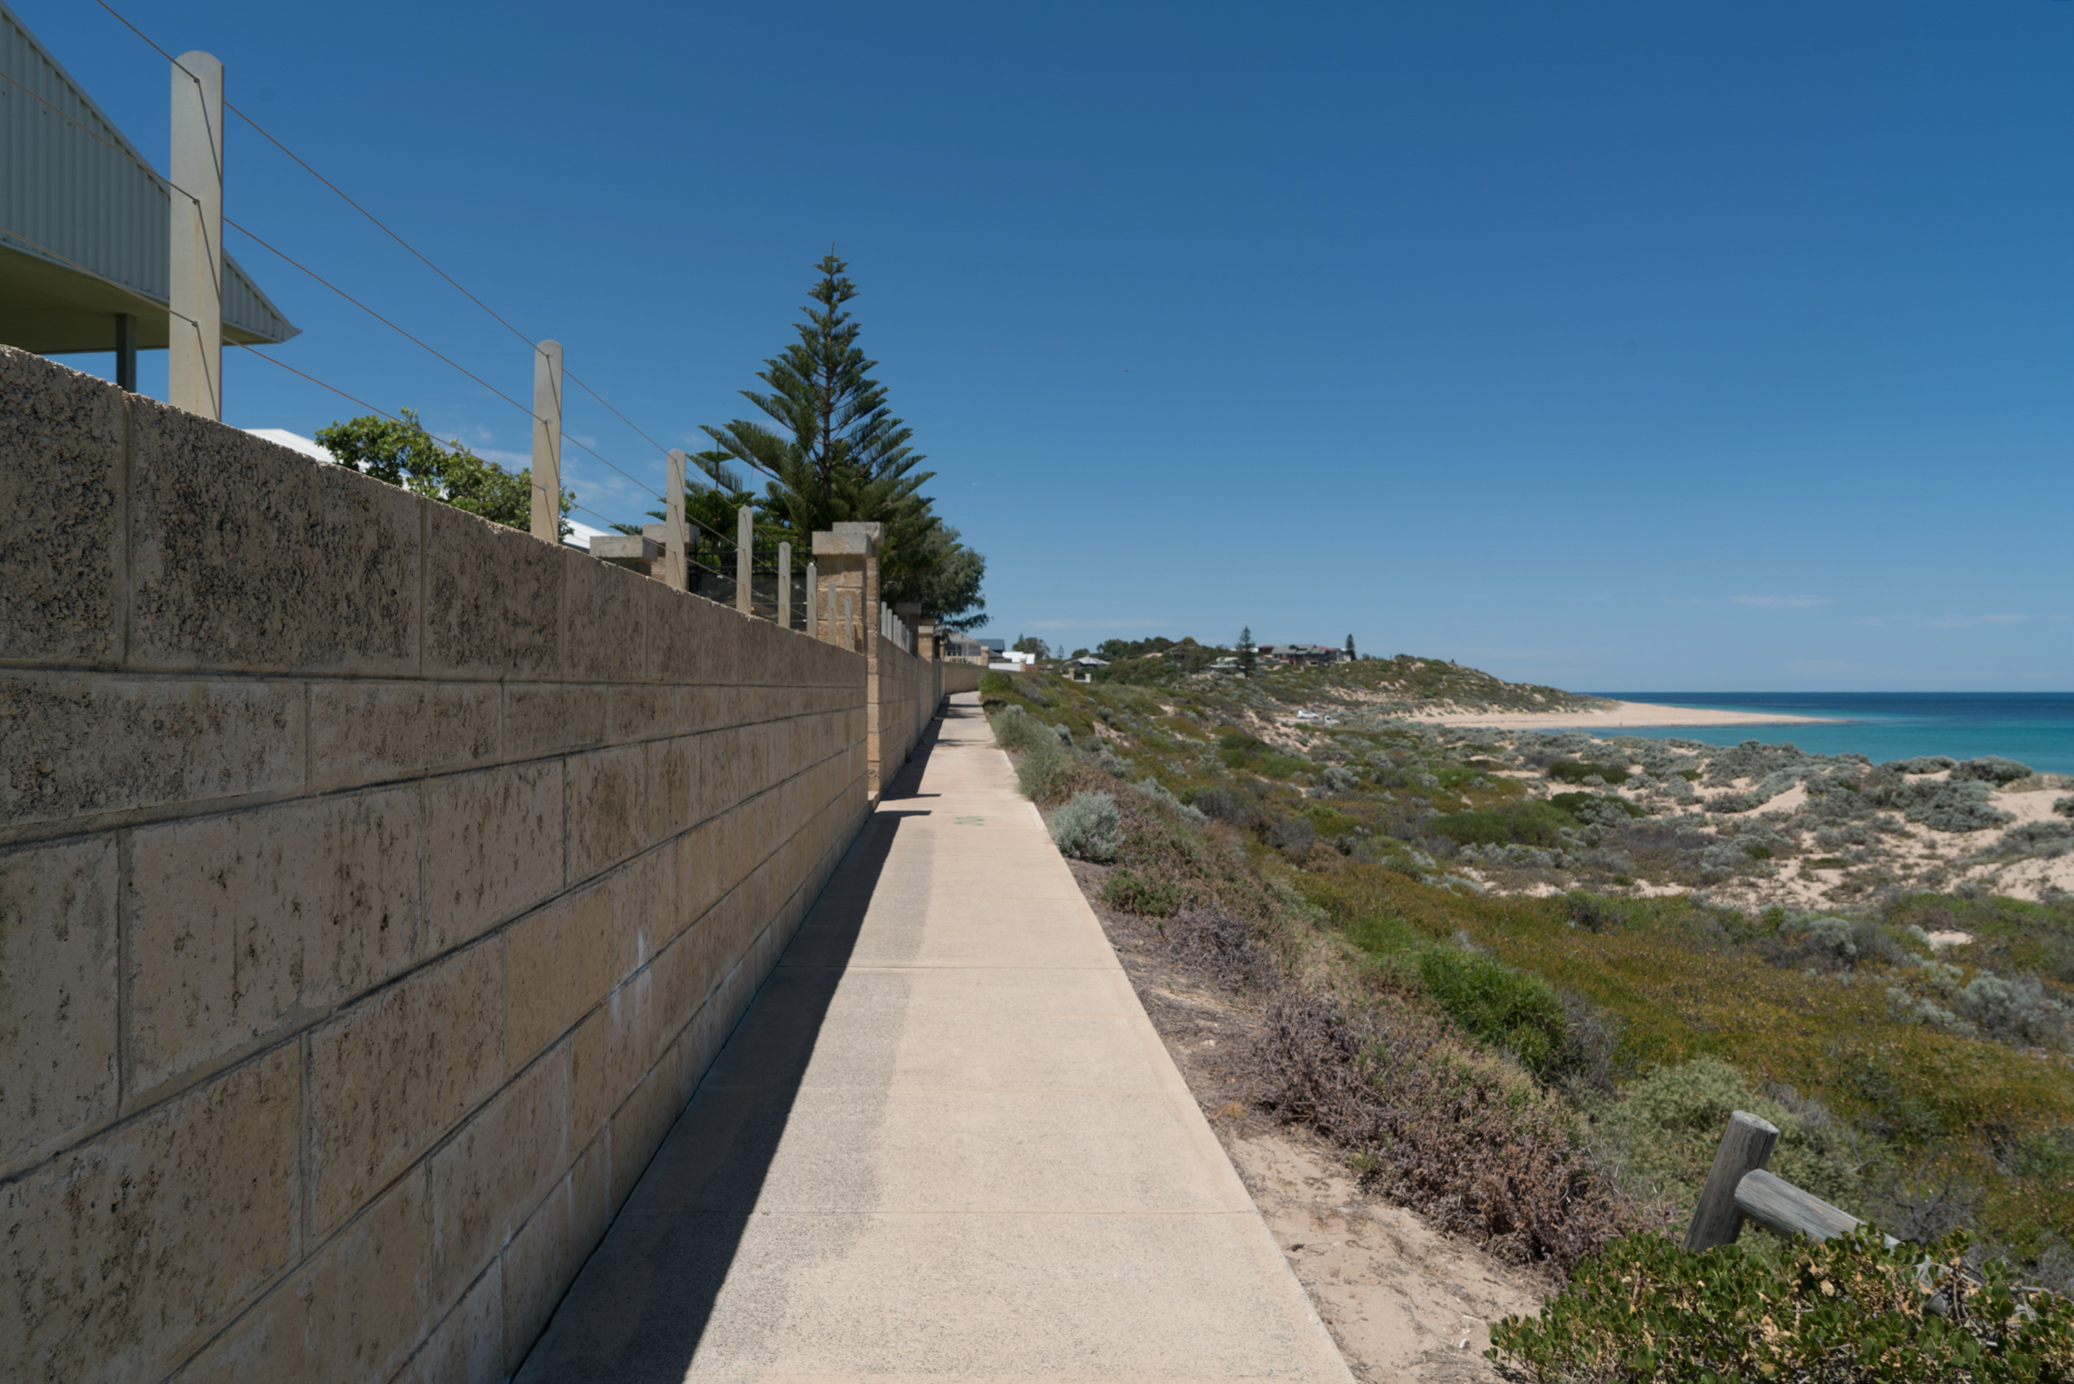 Plate 6: The path at the edge of the foreshore reserve in front of a row of houses